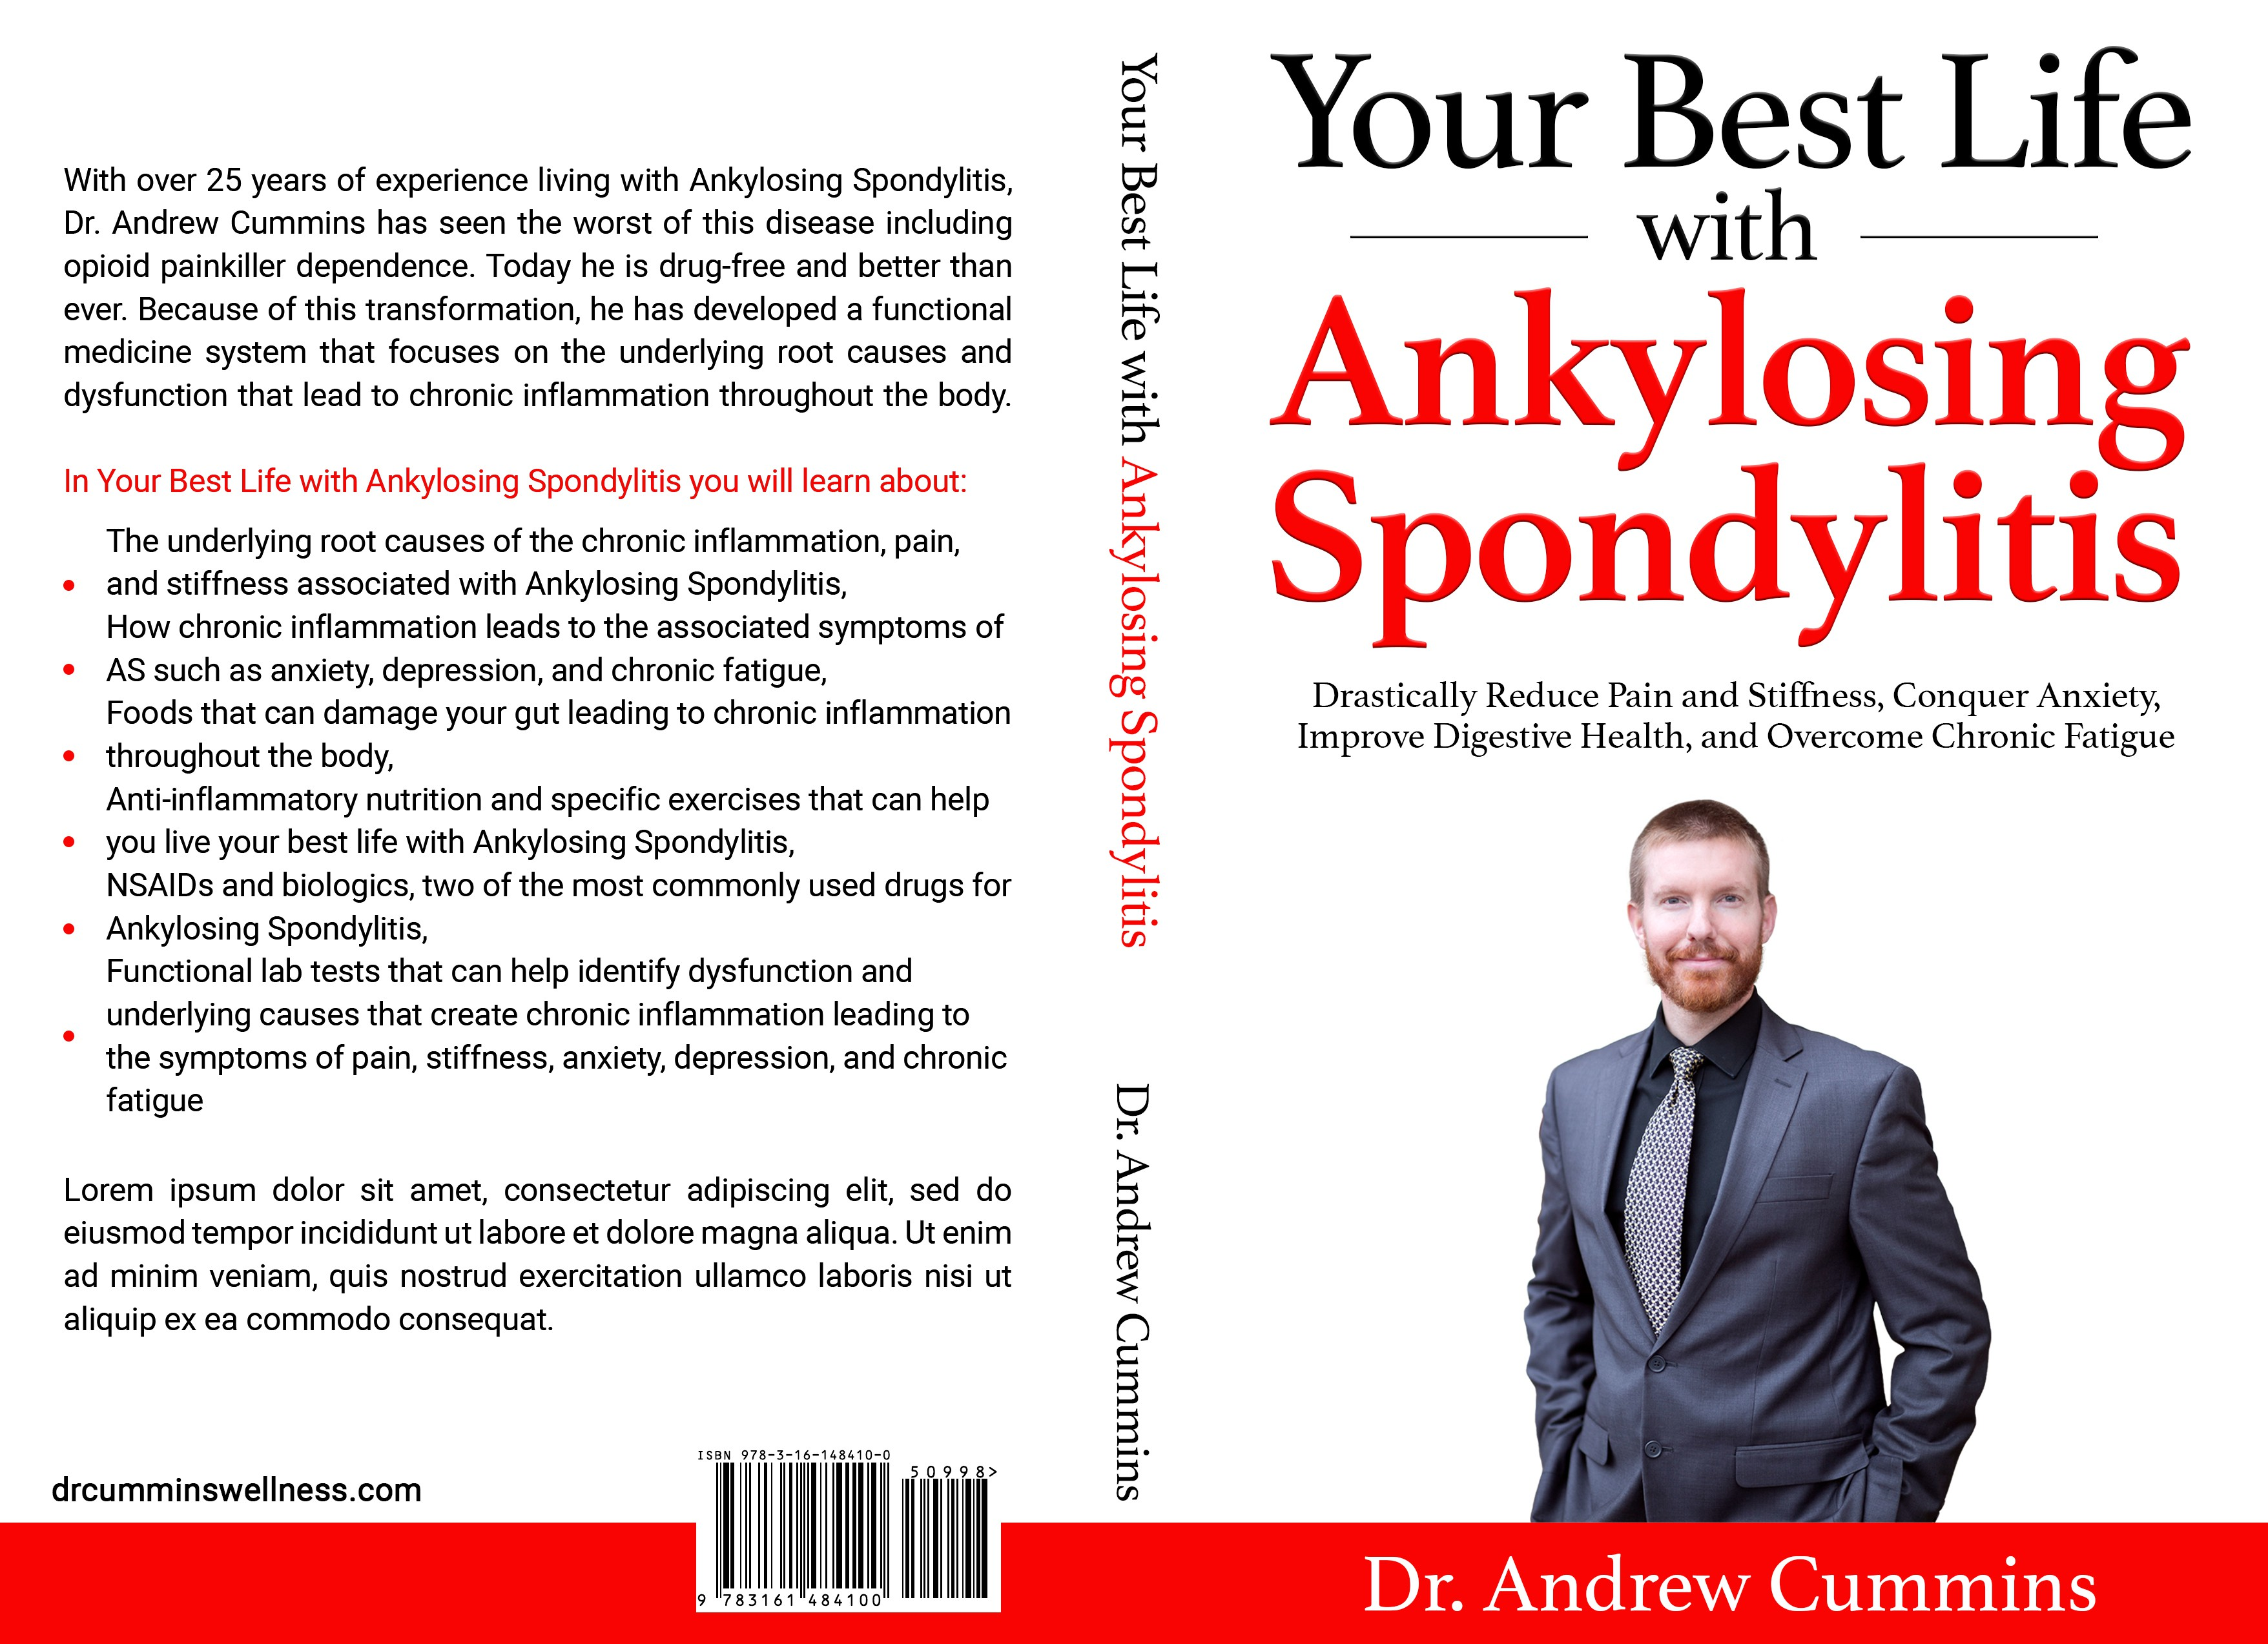 I need a professional Book Cover Design to help millions overcome chronic pain